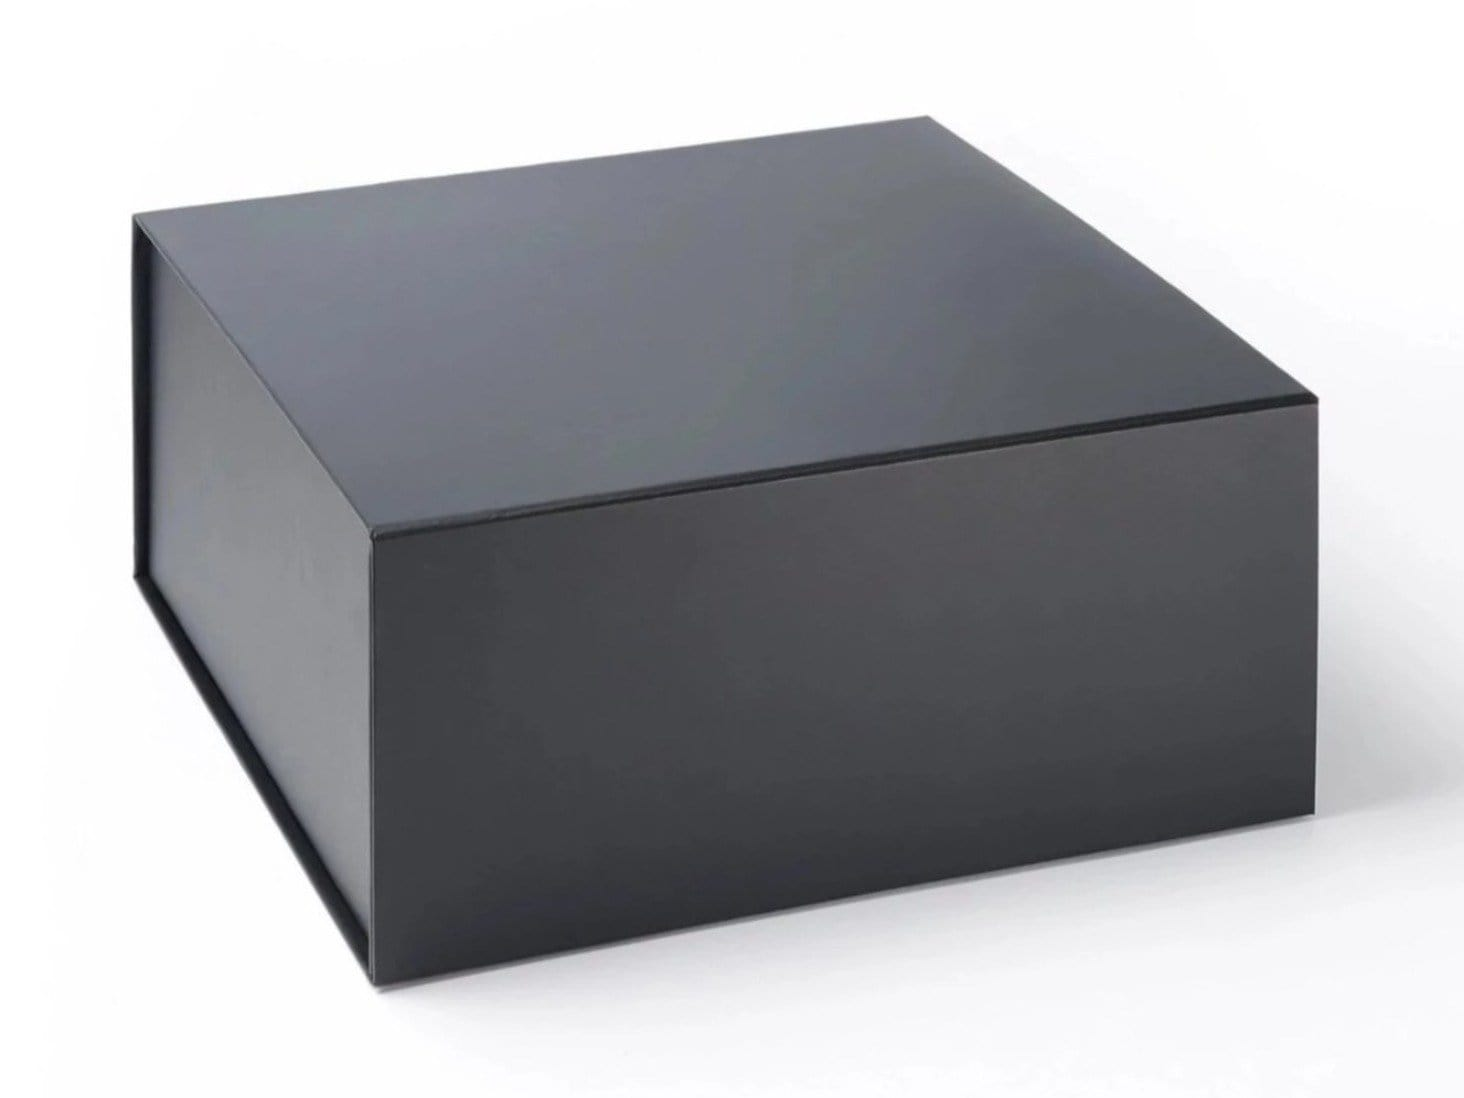 Black Extra Large Deep Gift Box or Hamper Box from Foldabox UK